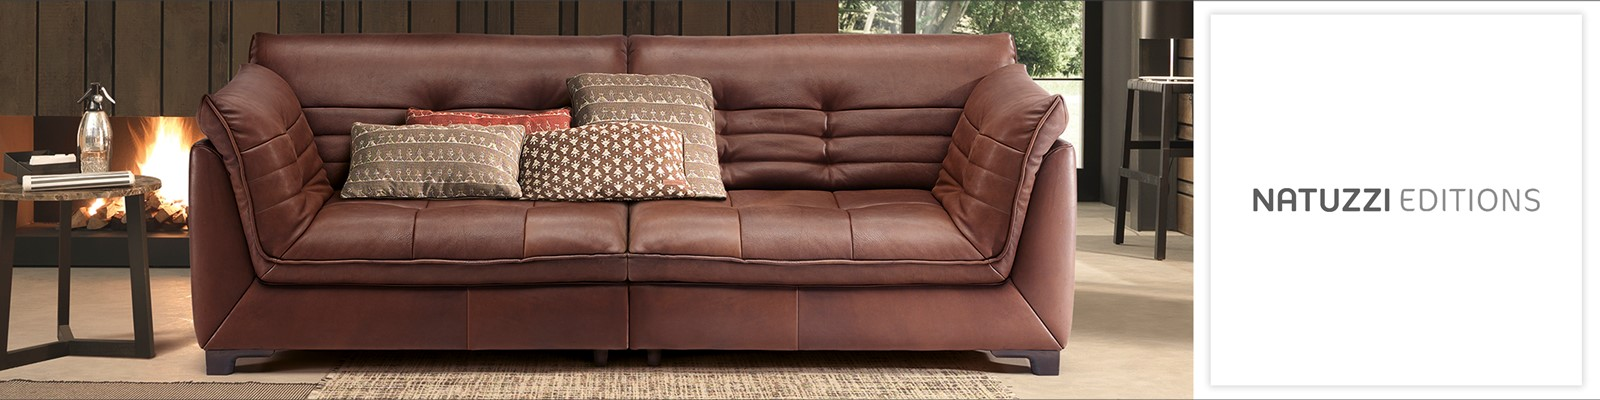 Developed From The Wealth Of Experience Natuzzi Group Editions Offers A Wide Range Comfortable Leather Sofas Tailored For Best